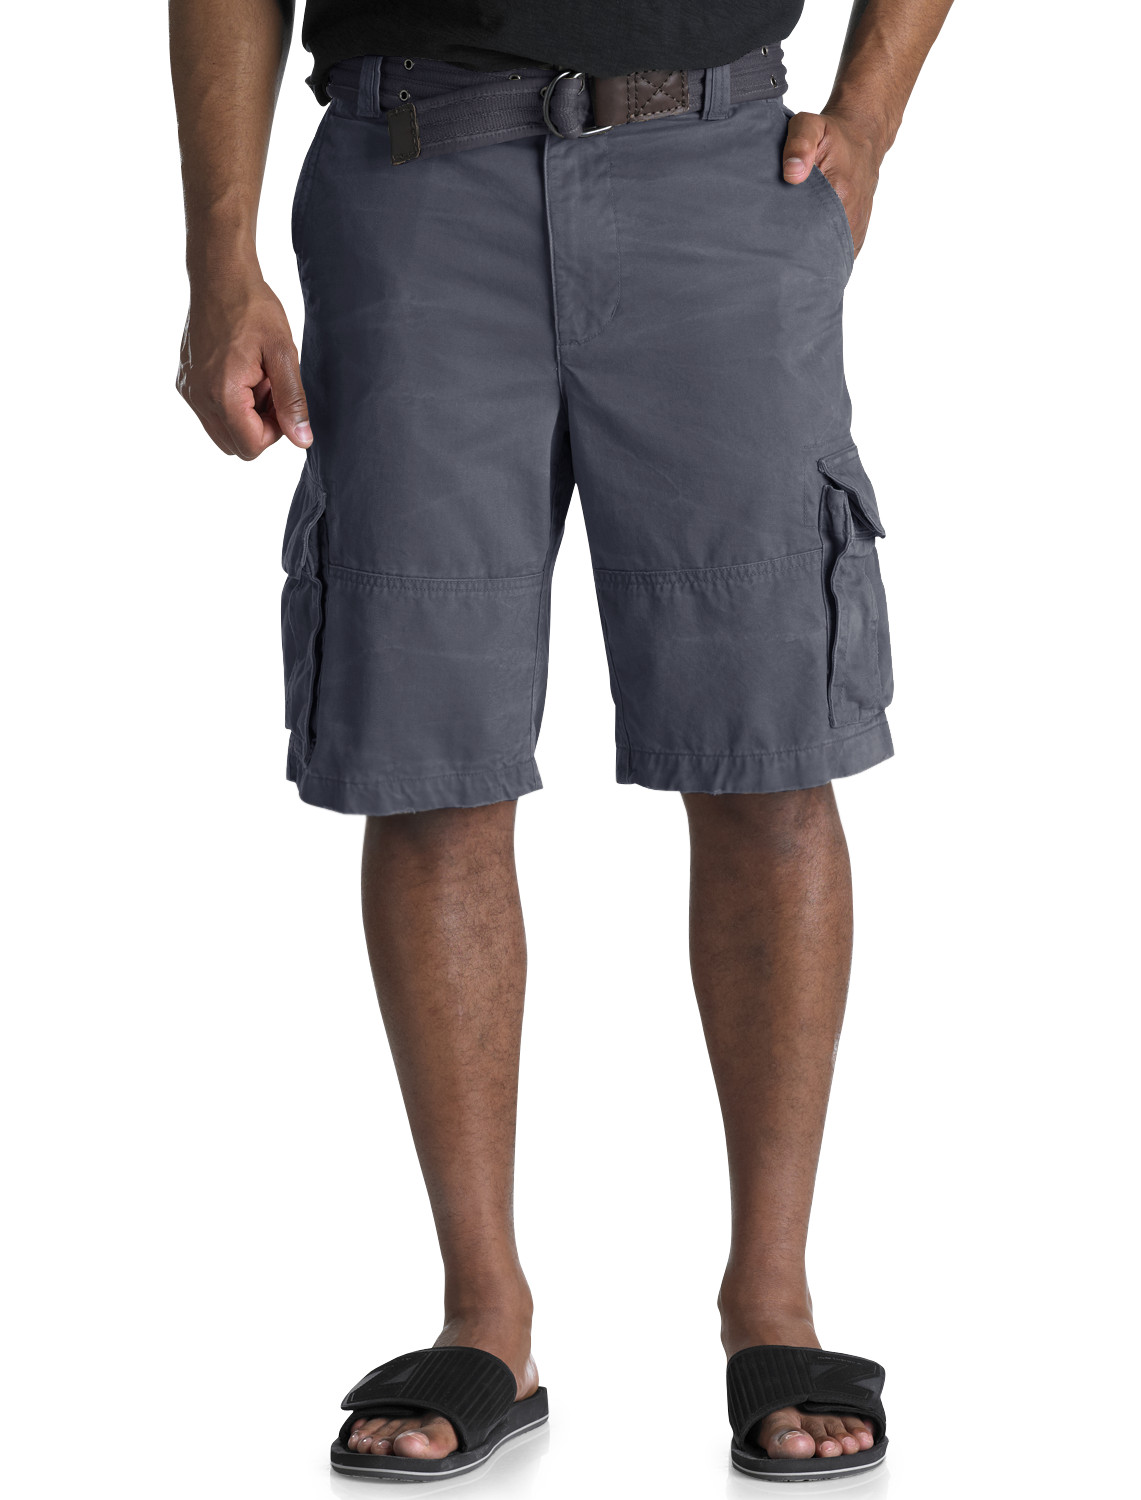 new coleman hiking quick dry cargo shorts wear them to the mountain, the woods, the beach, or just to the movies. these shorts are comfortable, functional, and durable from the people who wrote the book on outdoor products, coleman.